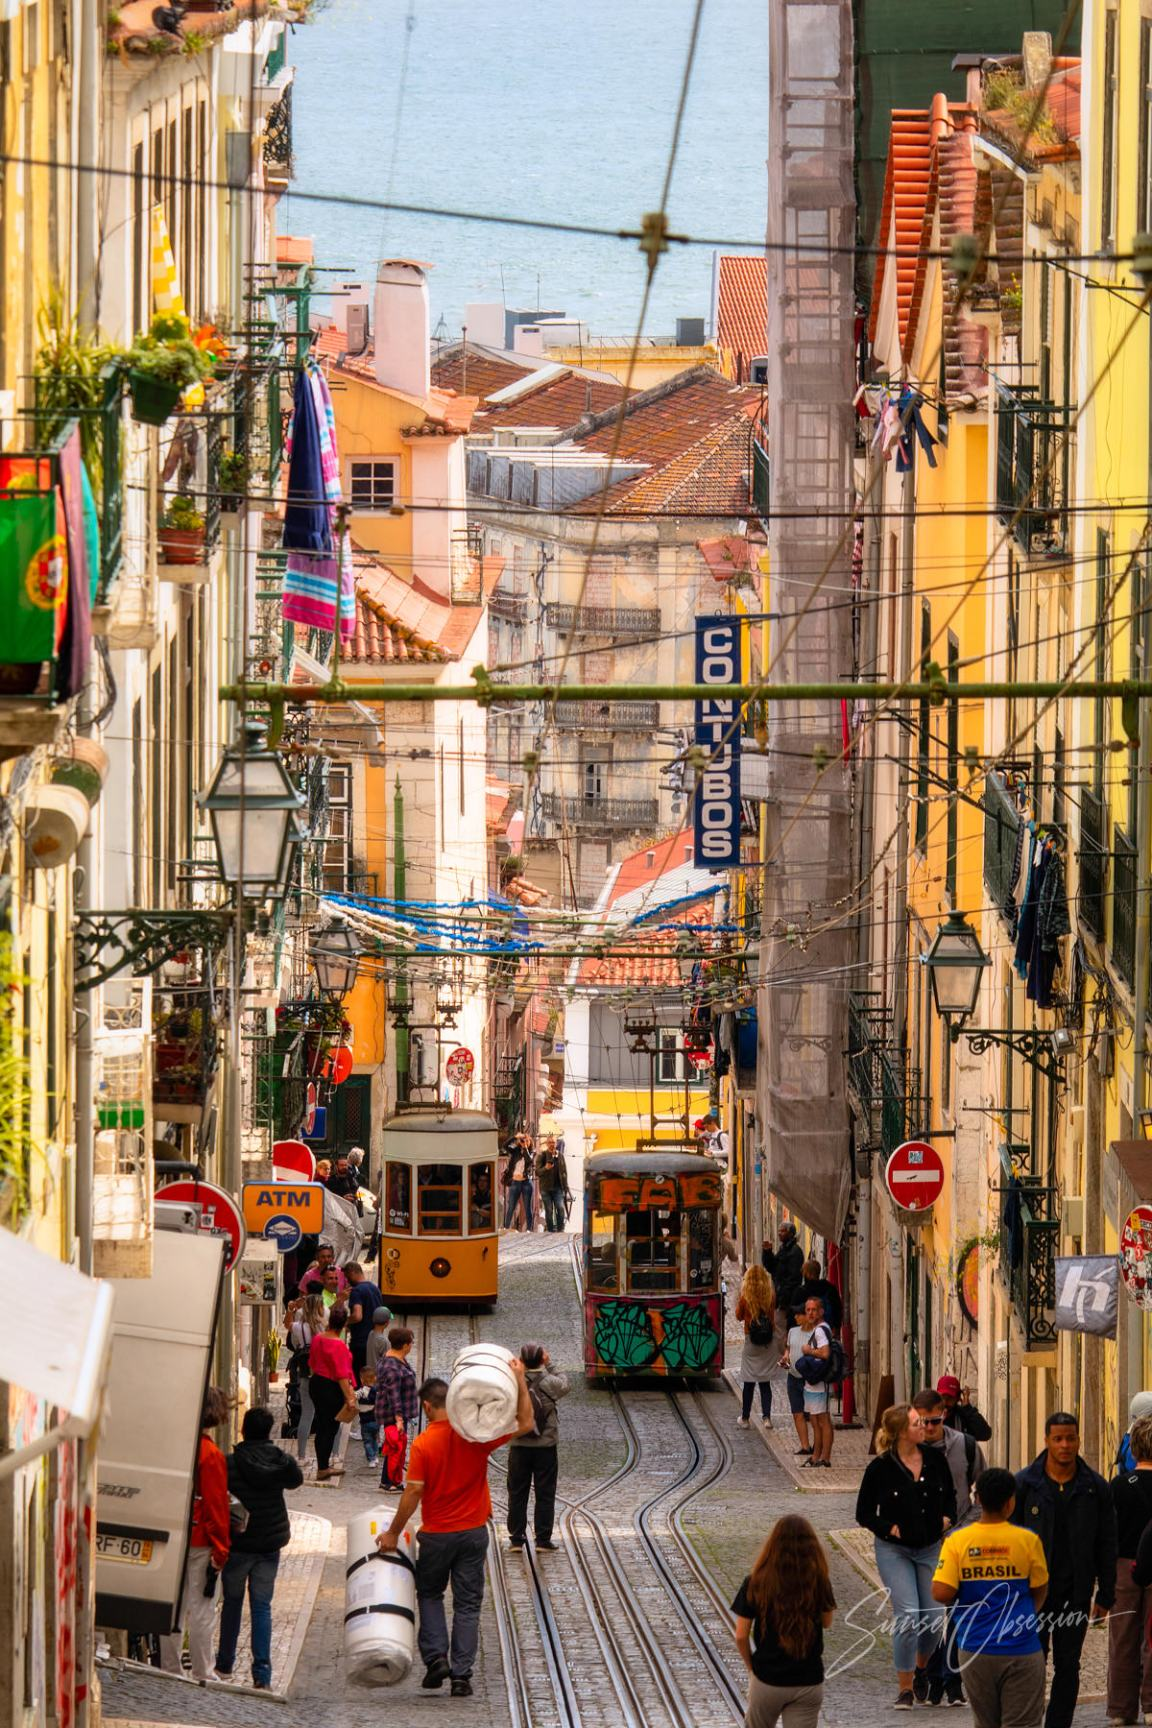 A view of the Bica lift street in Lisbon on a busy afternoon